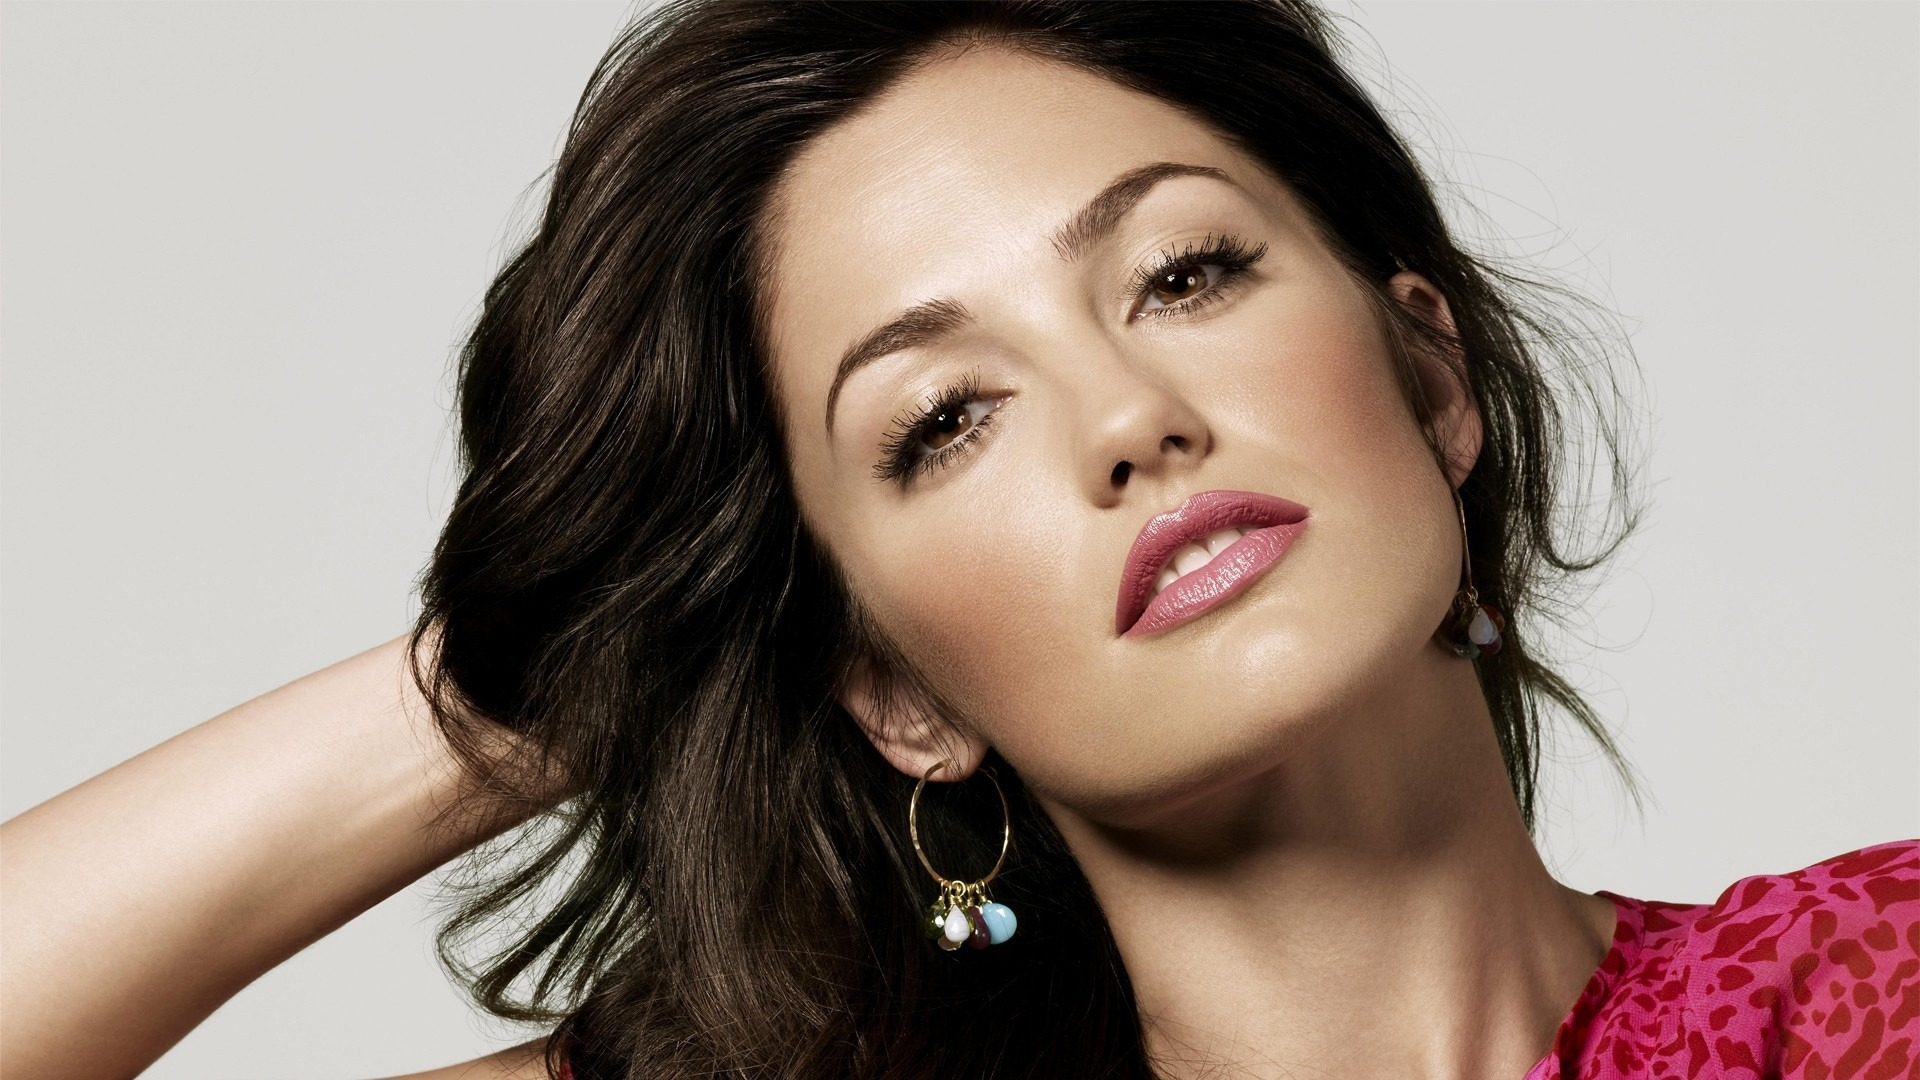 actress minka kelly photos images photos download